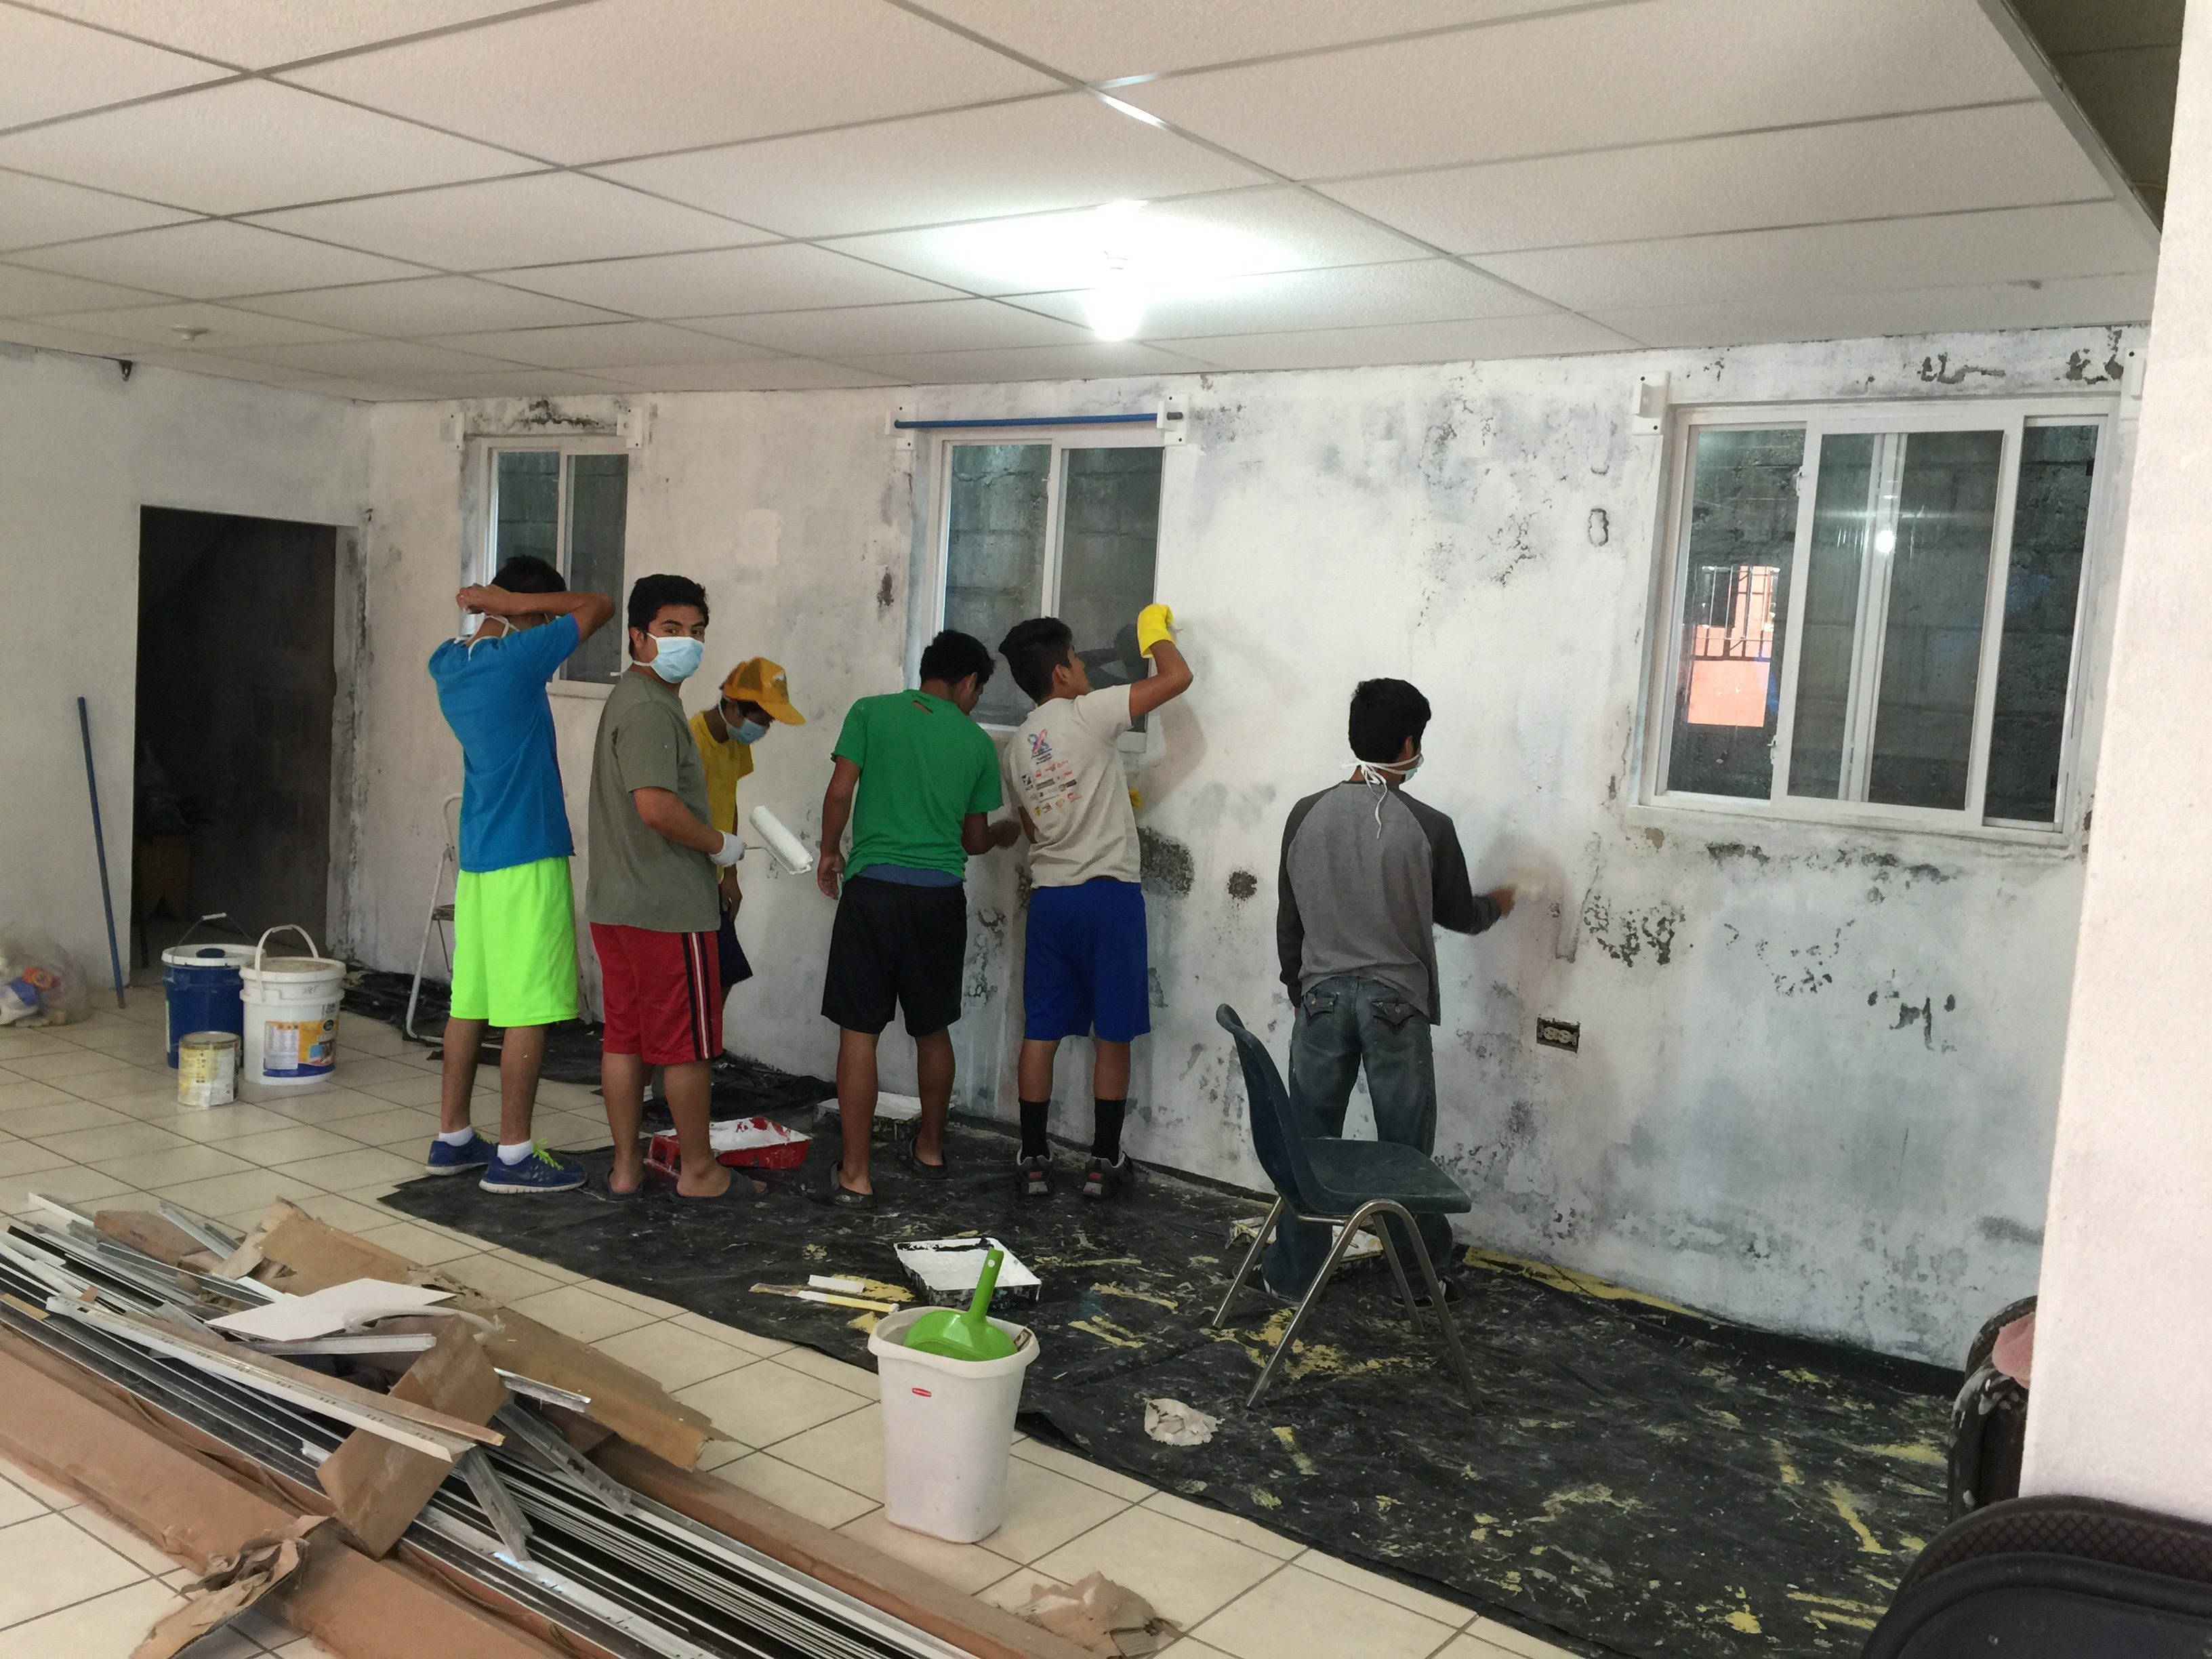 The boys who live in our home painting the visitor's dorm